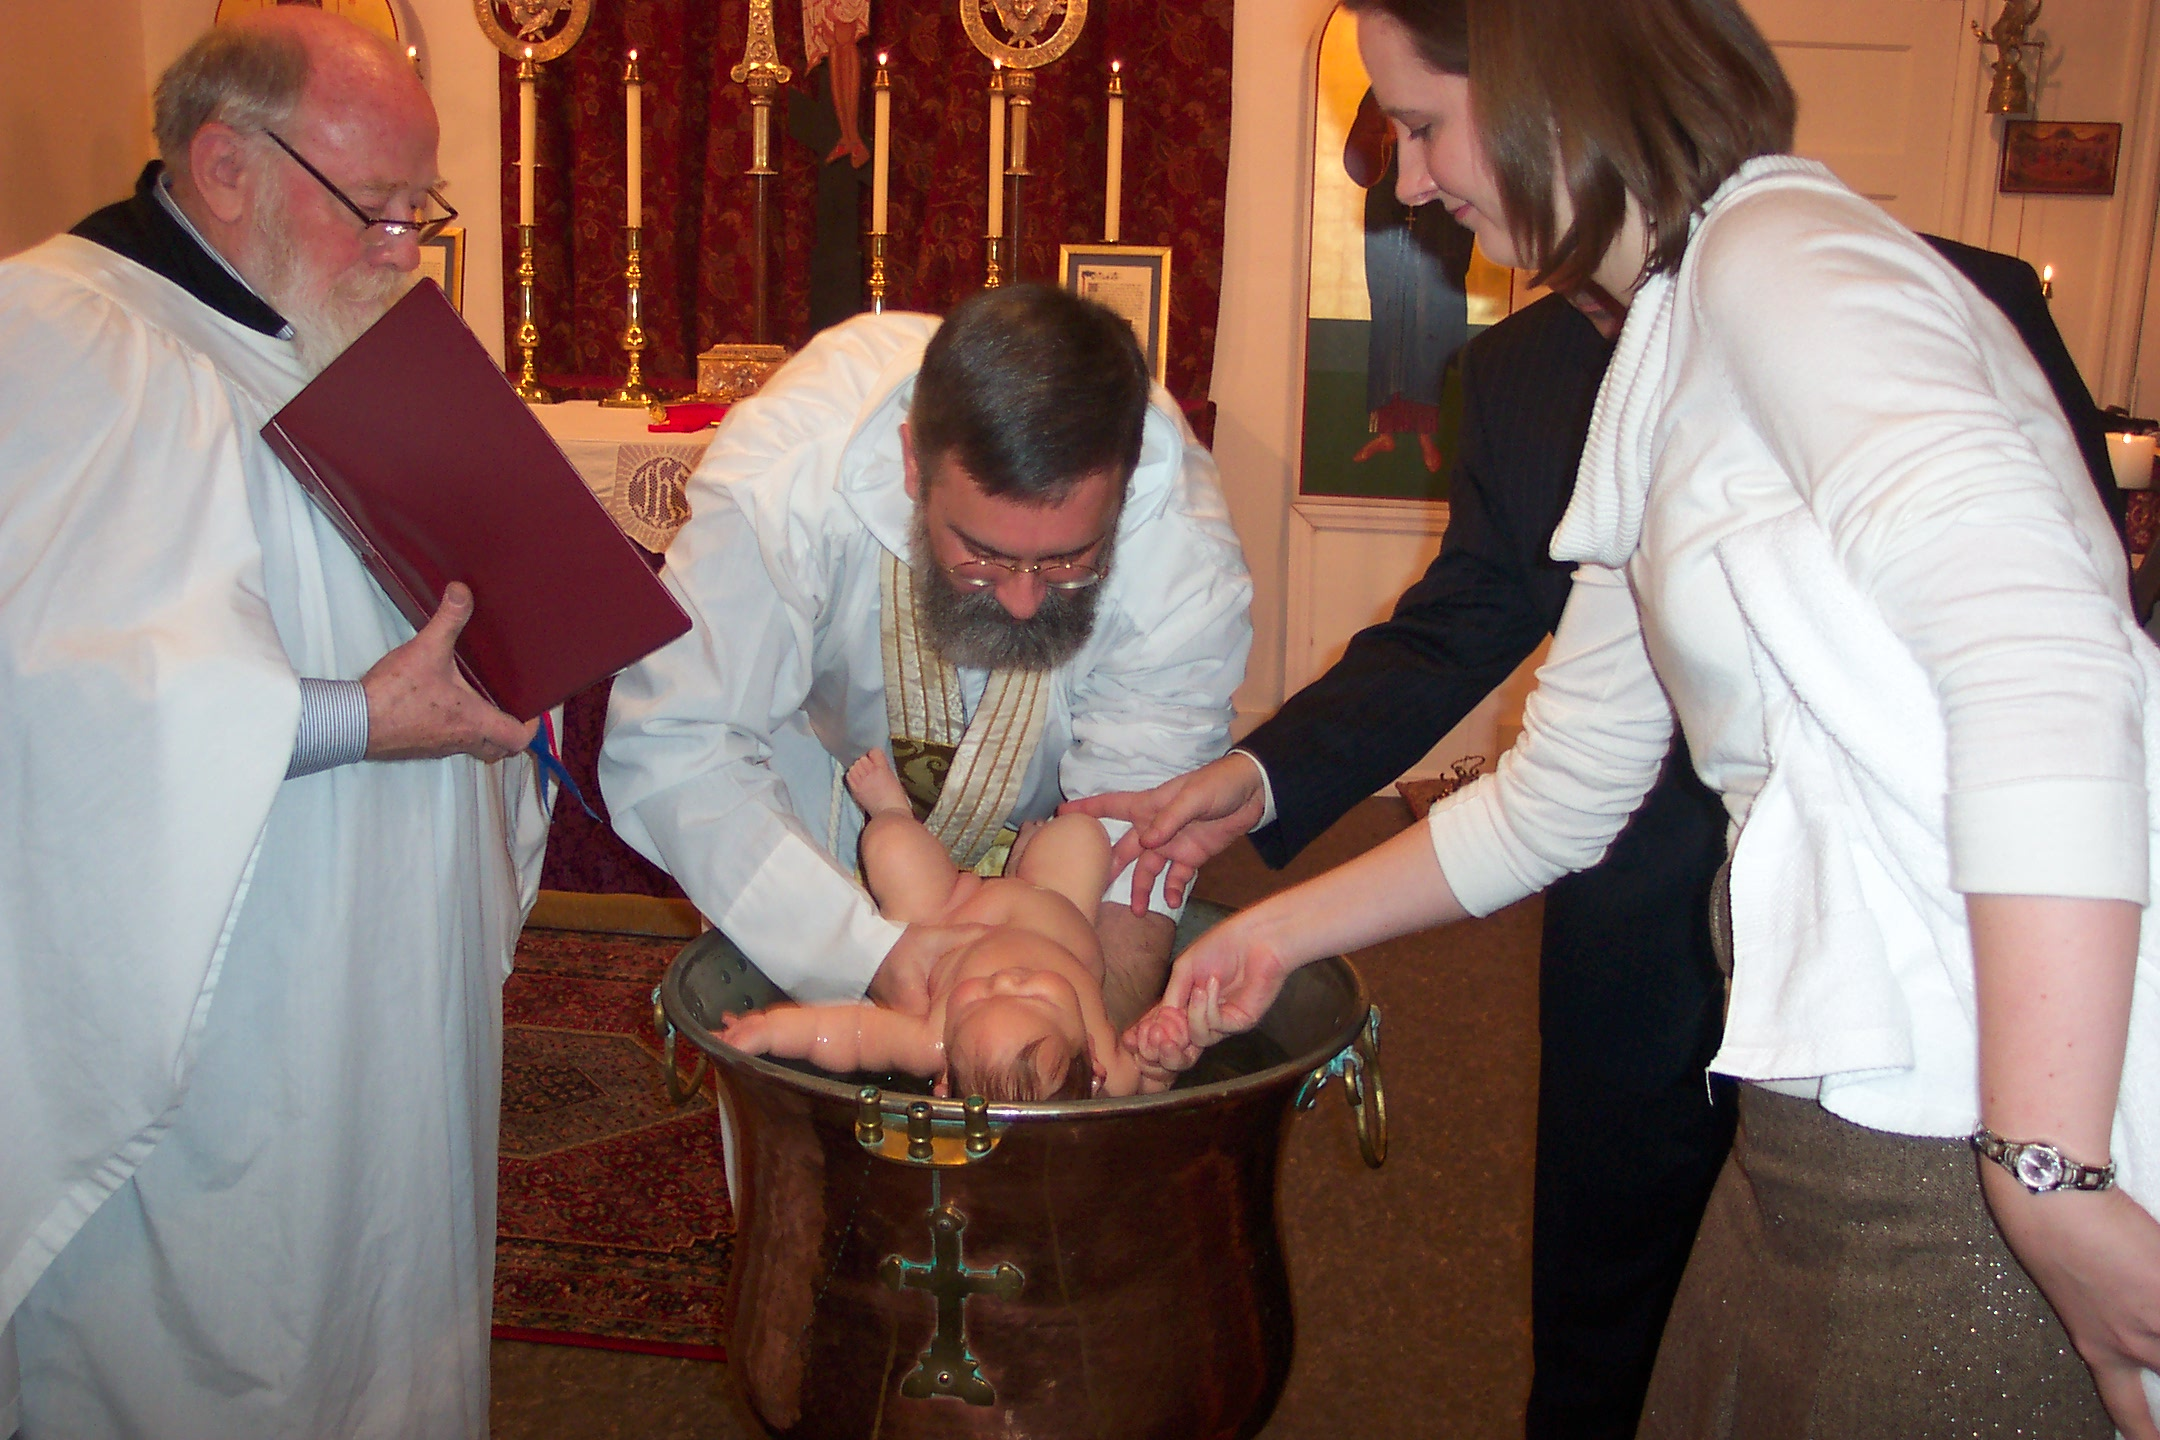 The ceremonies of holy baptism and chrismation biocorpaavc Choice Image